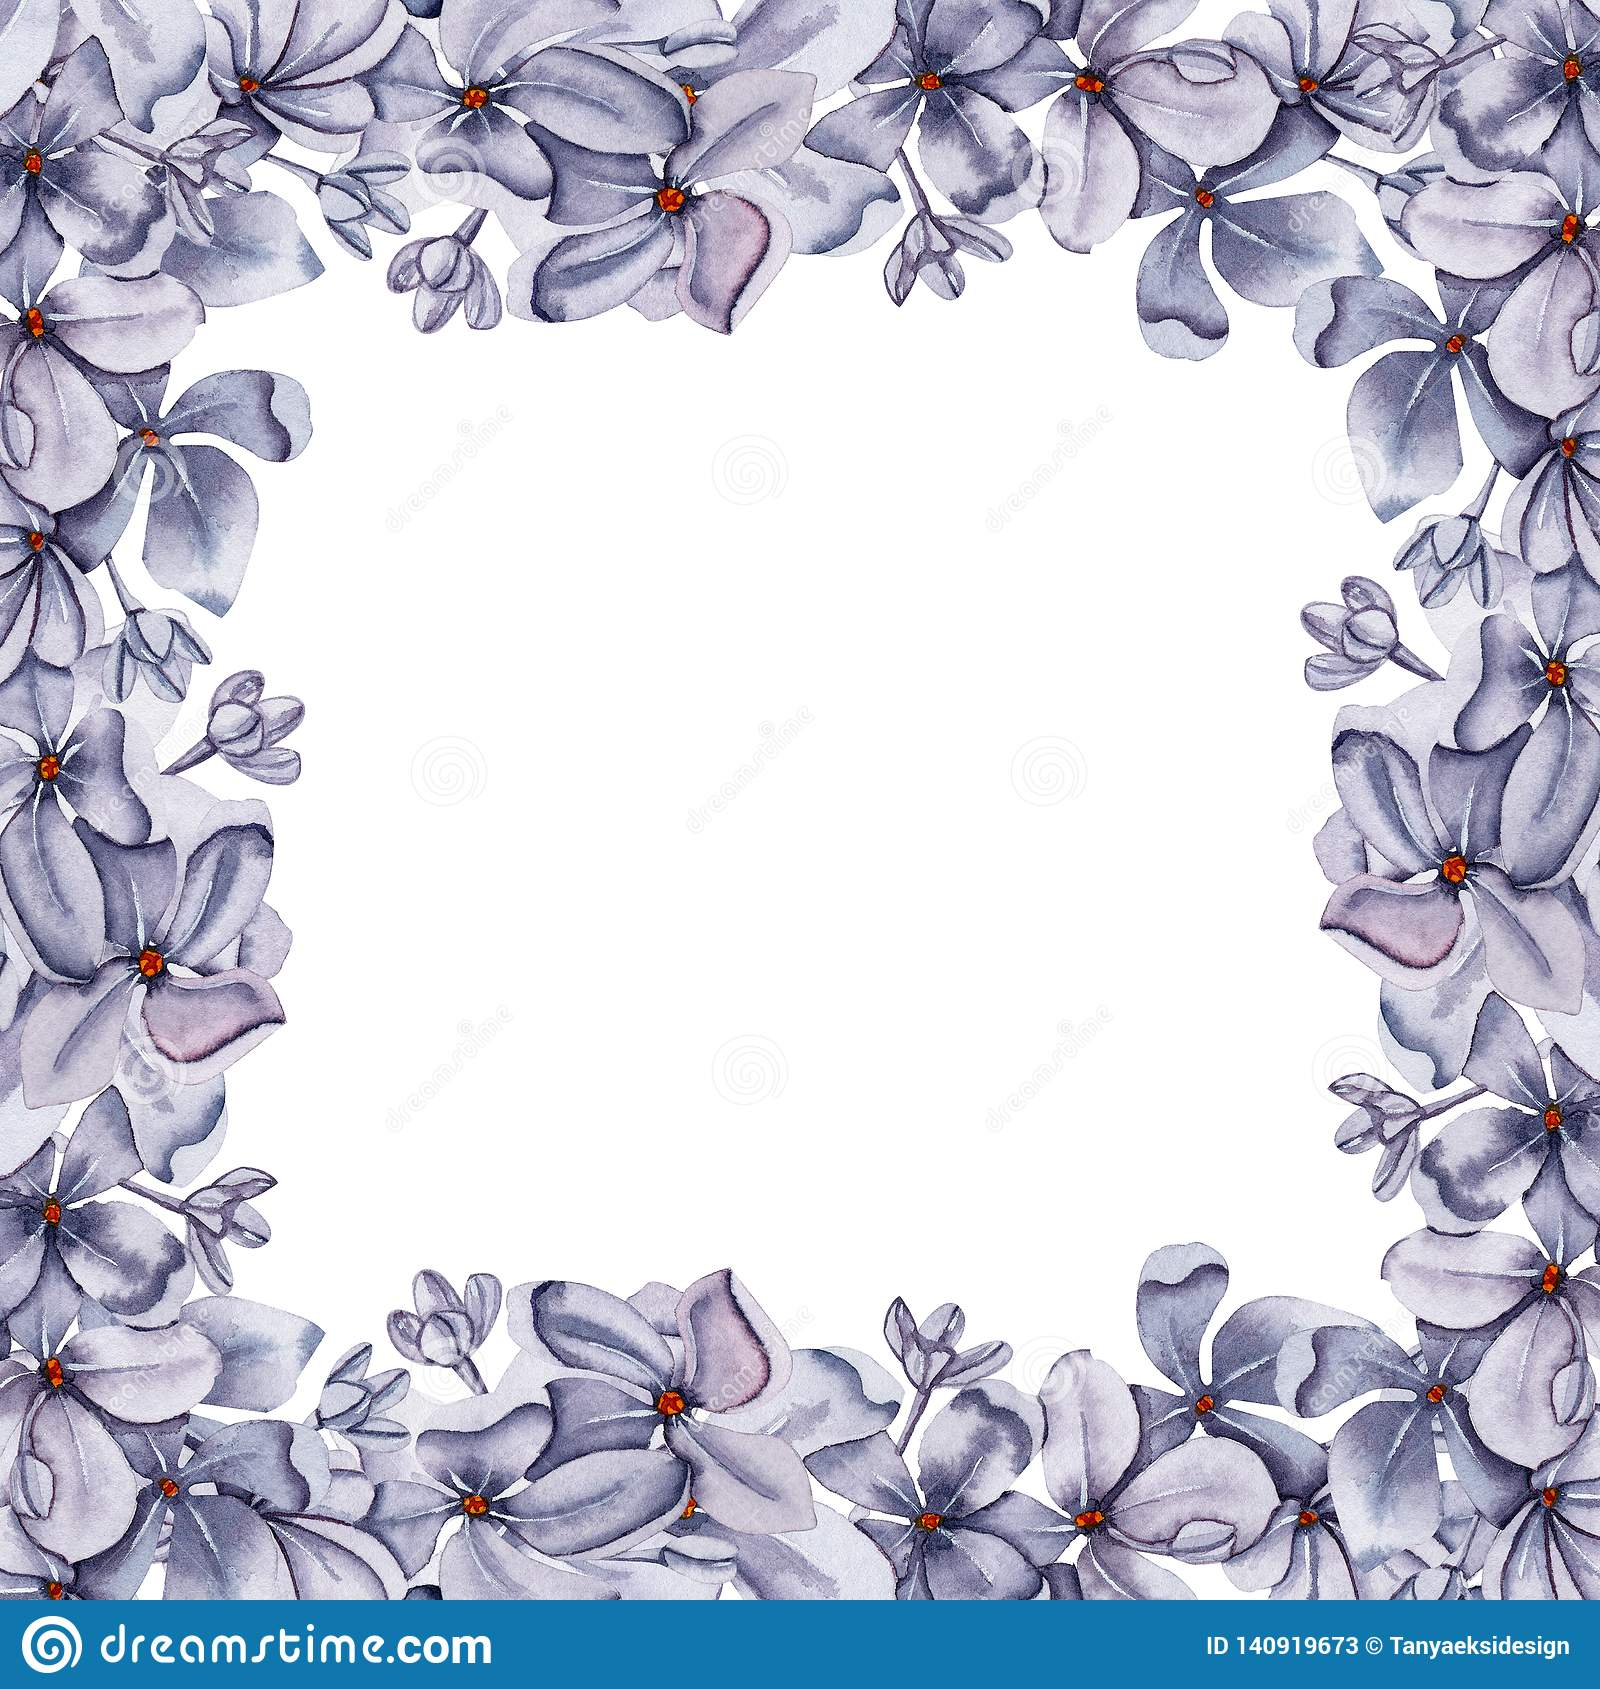 Hand Drawn Watercolor Floral Frame Background For Cards